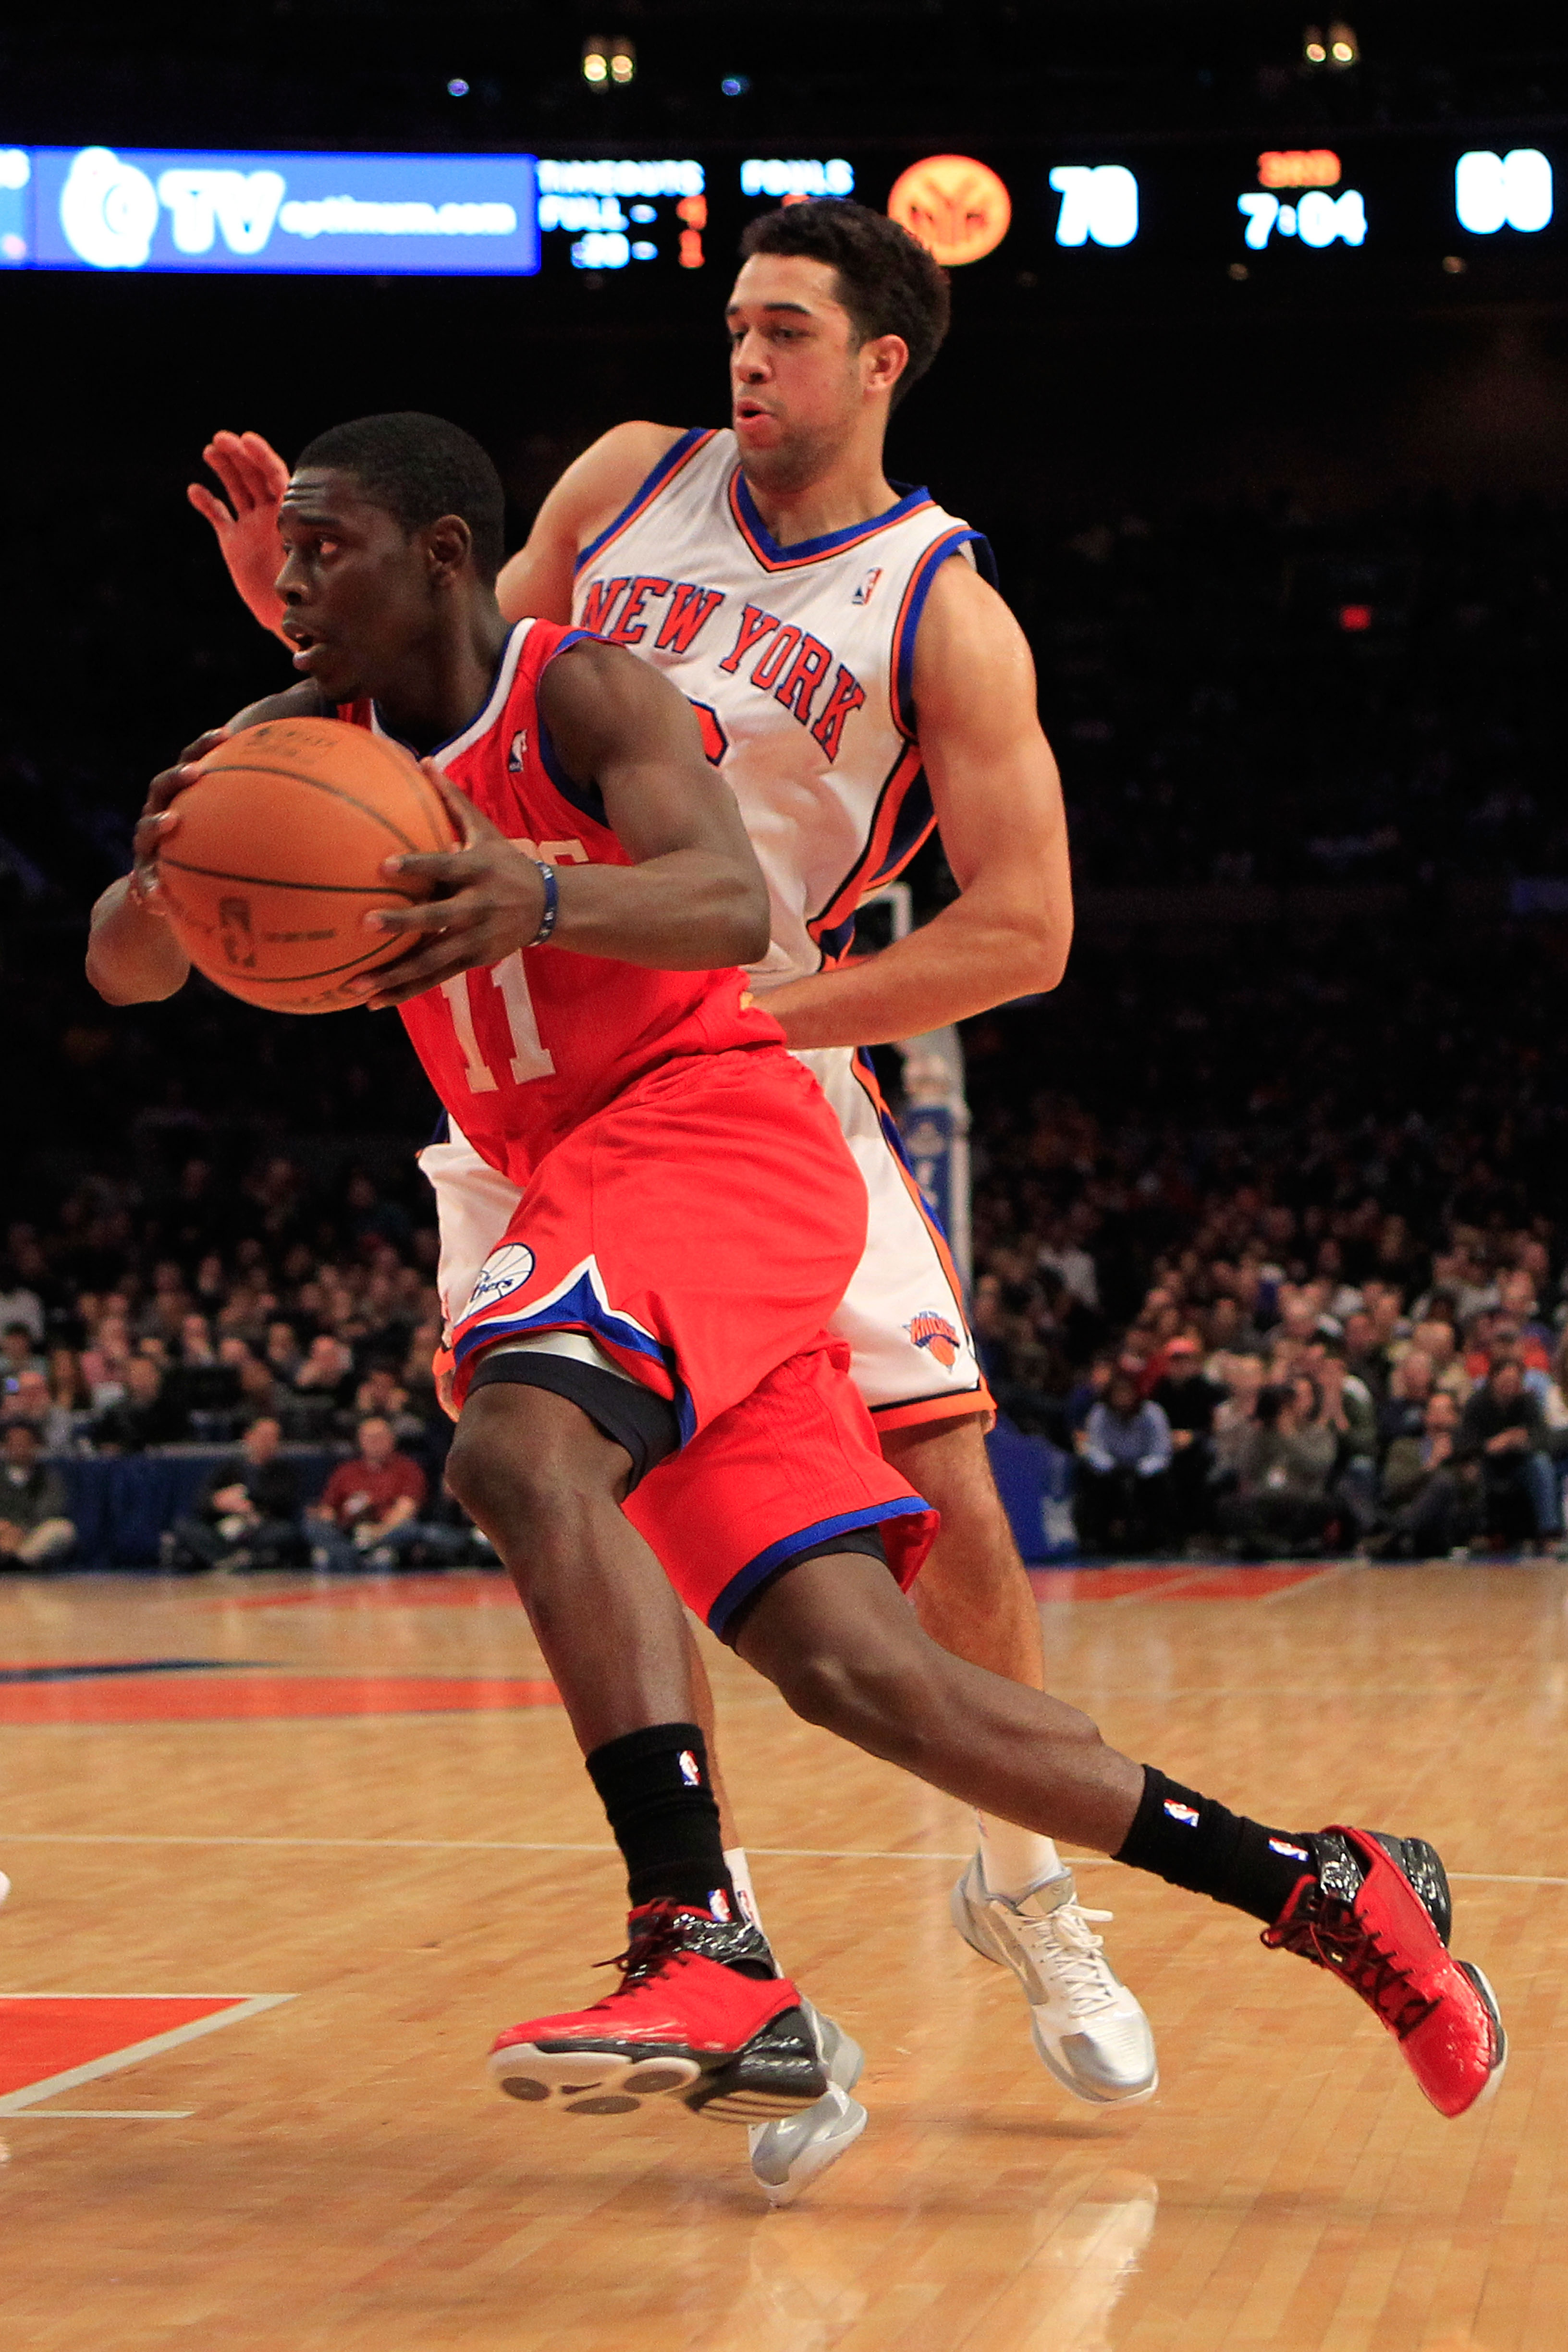 NEW YORK, NY - FEBRUARY 06: Jrue Holiday #11 of the Philadelphia 76ers drives past Landry Fields #6 of the New York Knicks at Madison Square Garden on February 6, 2011 in New York City. NOTE TO USER: User expressly acknowledges and agrees that, by downloa